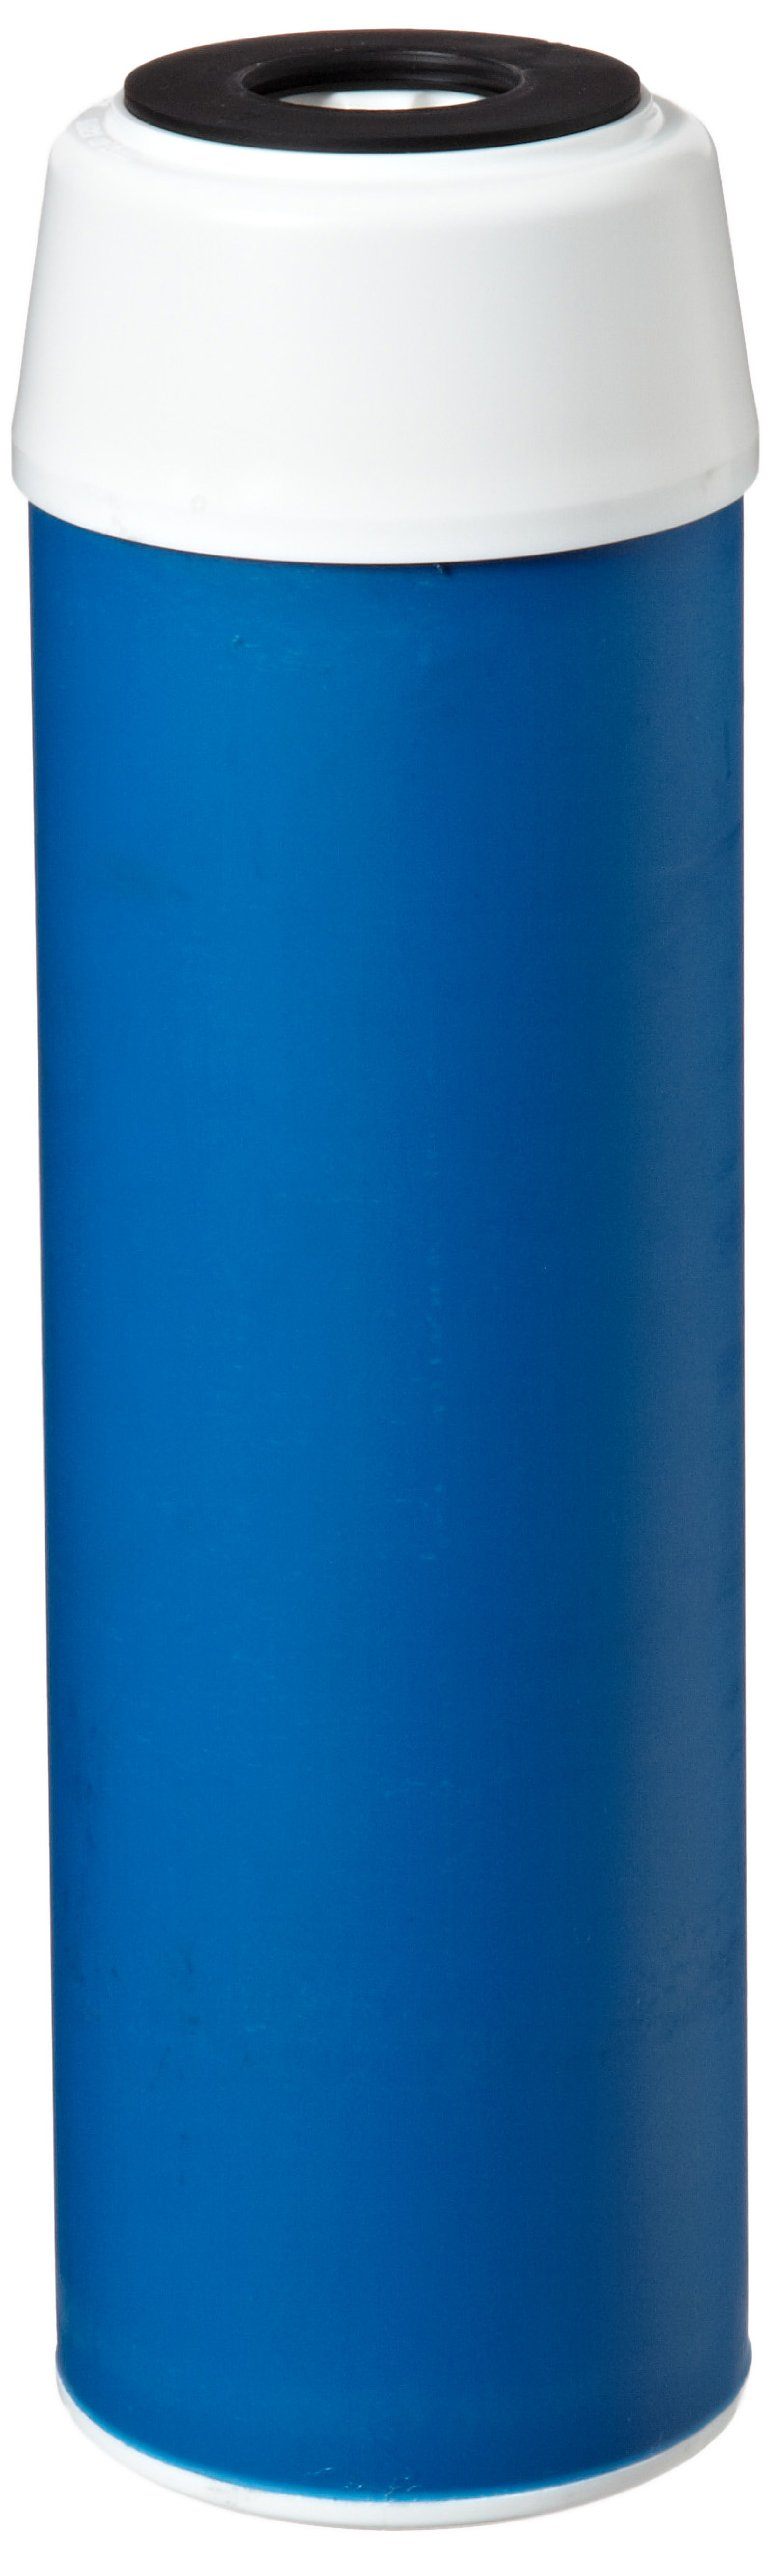 Pentek UDS-10EX1 Bacteriostatic KDF and Carbon Filter Cartridge, 9-3/4'' x 2-7/8'', 5 Micron